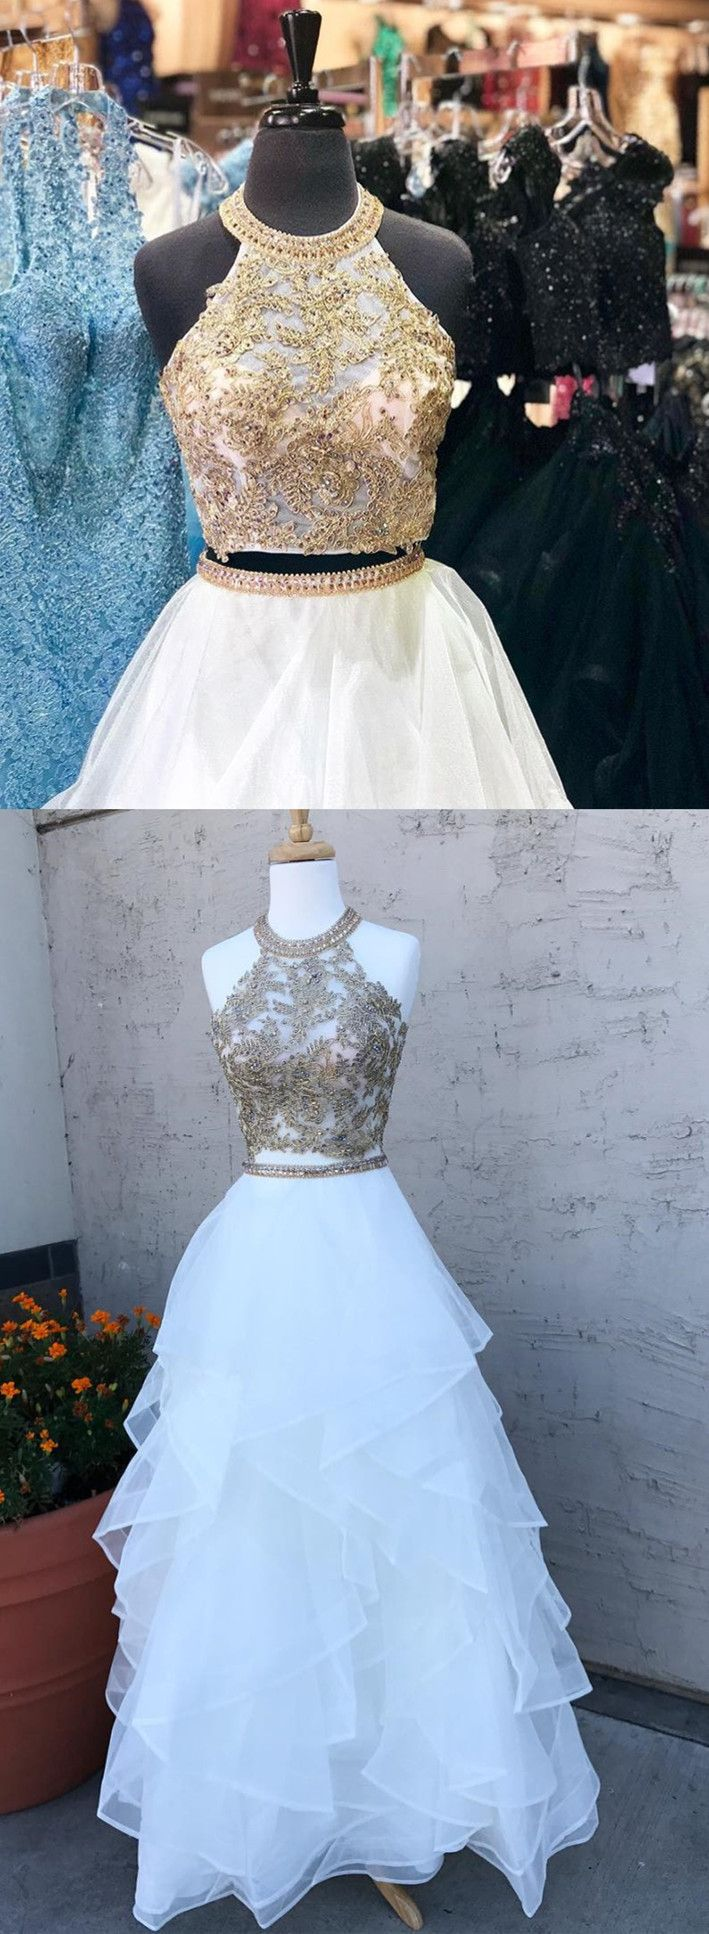 two piece white long prom dress 2k18, 2018 gold sequins white long prom dress ball gown, sweet 16 dress